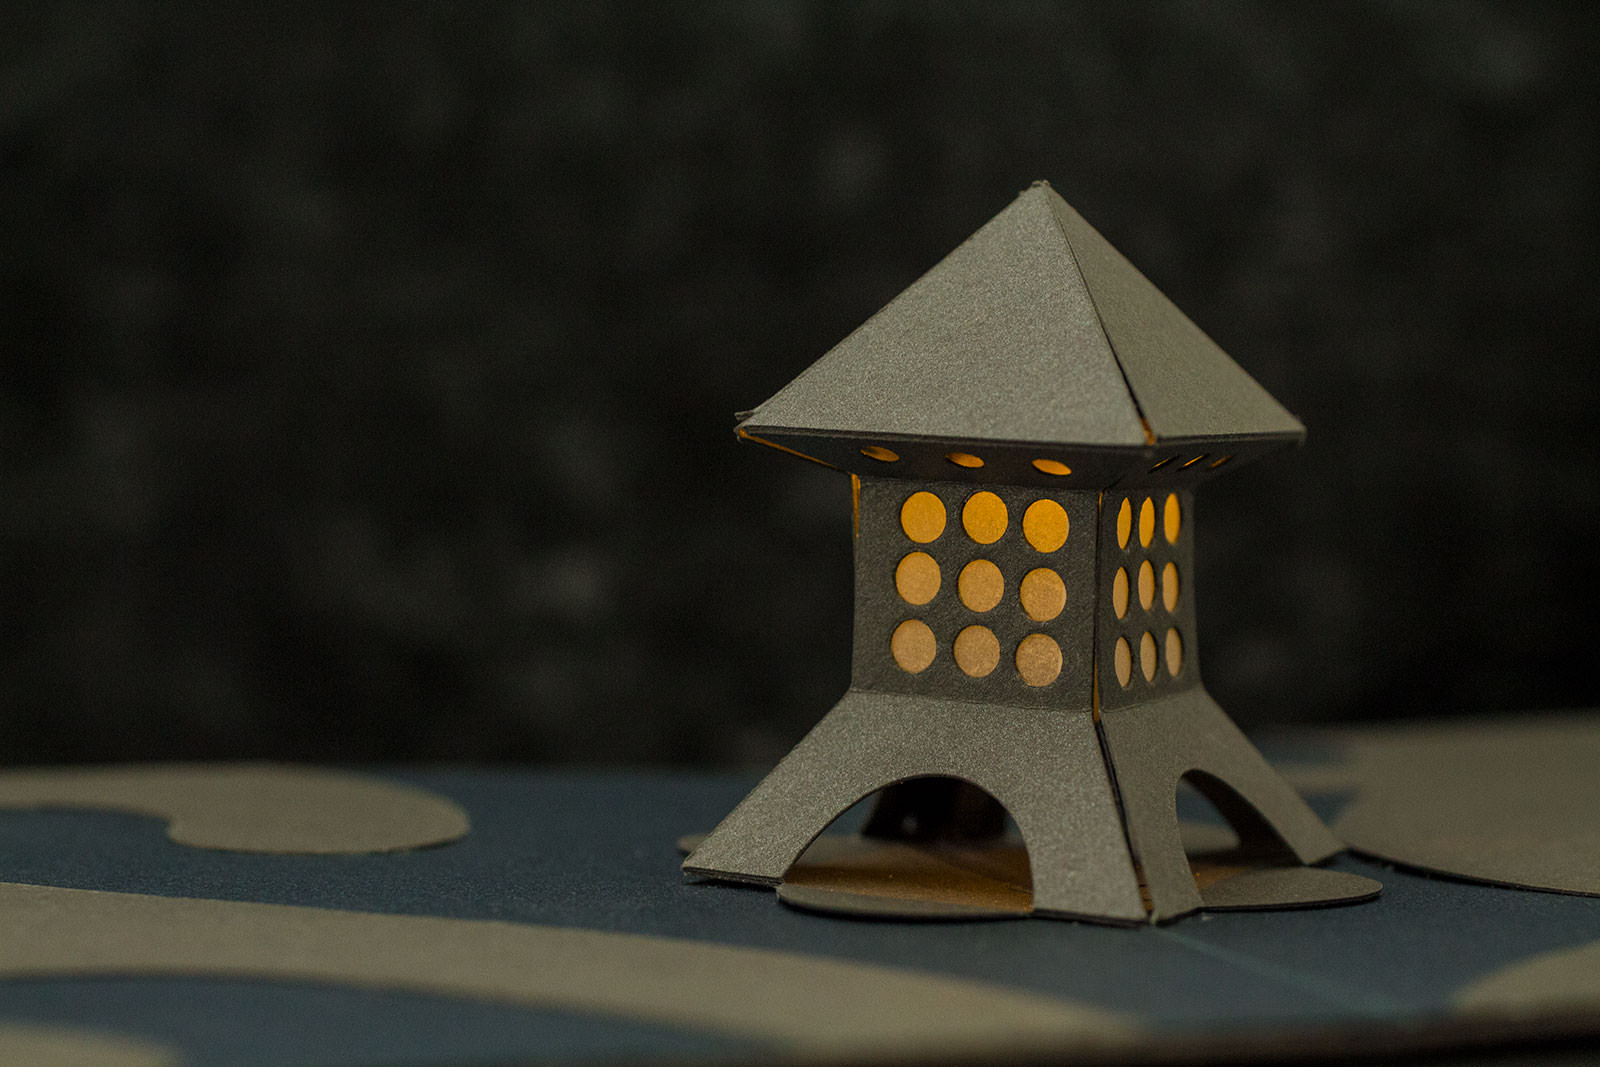 Garden Lantern Origamic Architecture / Kirigami with integrated electronics